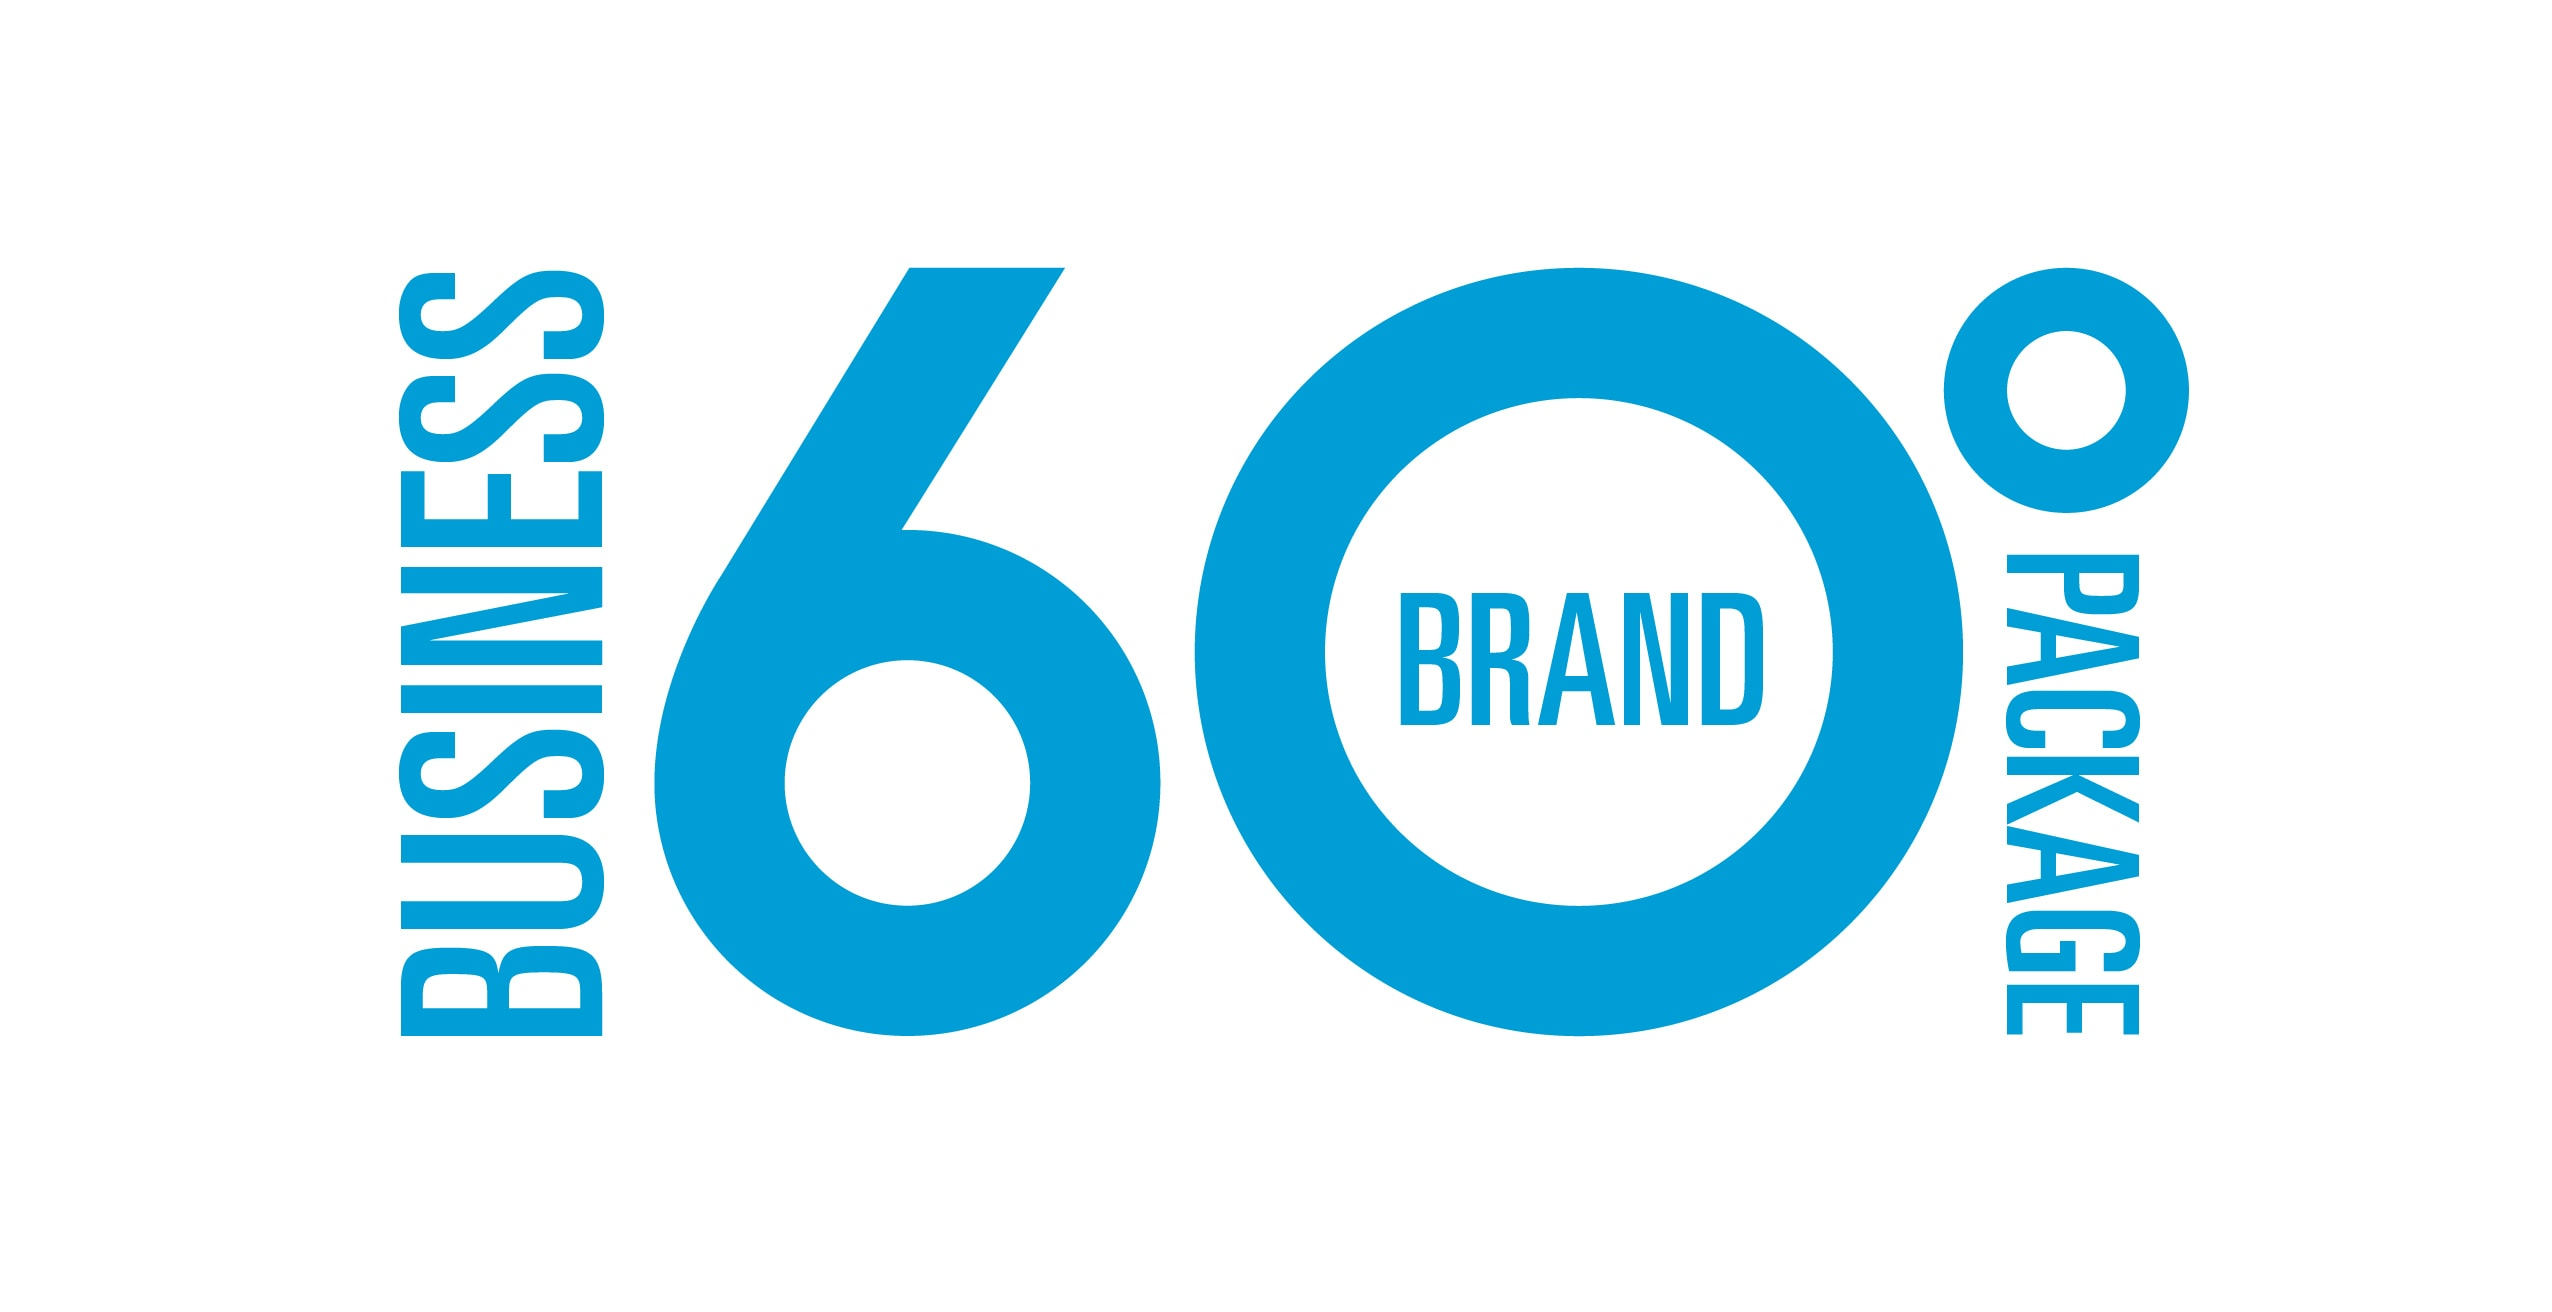 Right Angle Creative brand packages symbol design 60 business